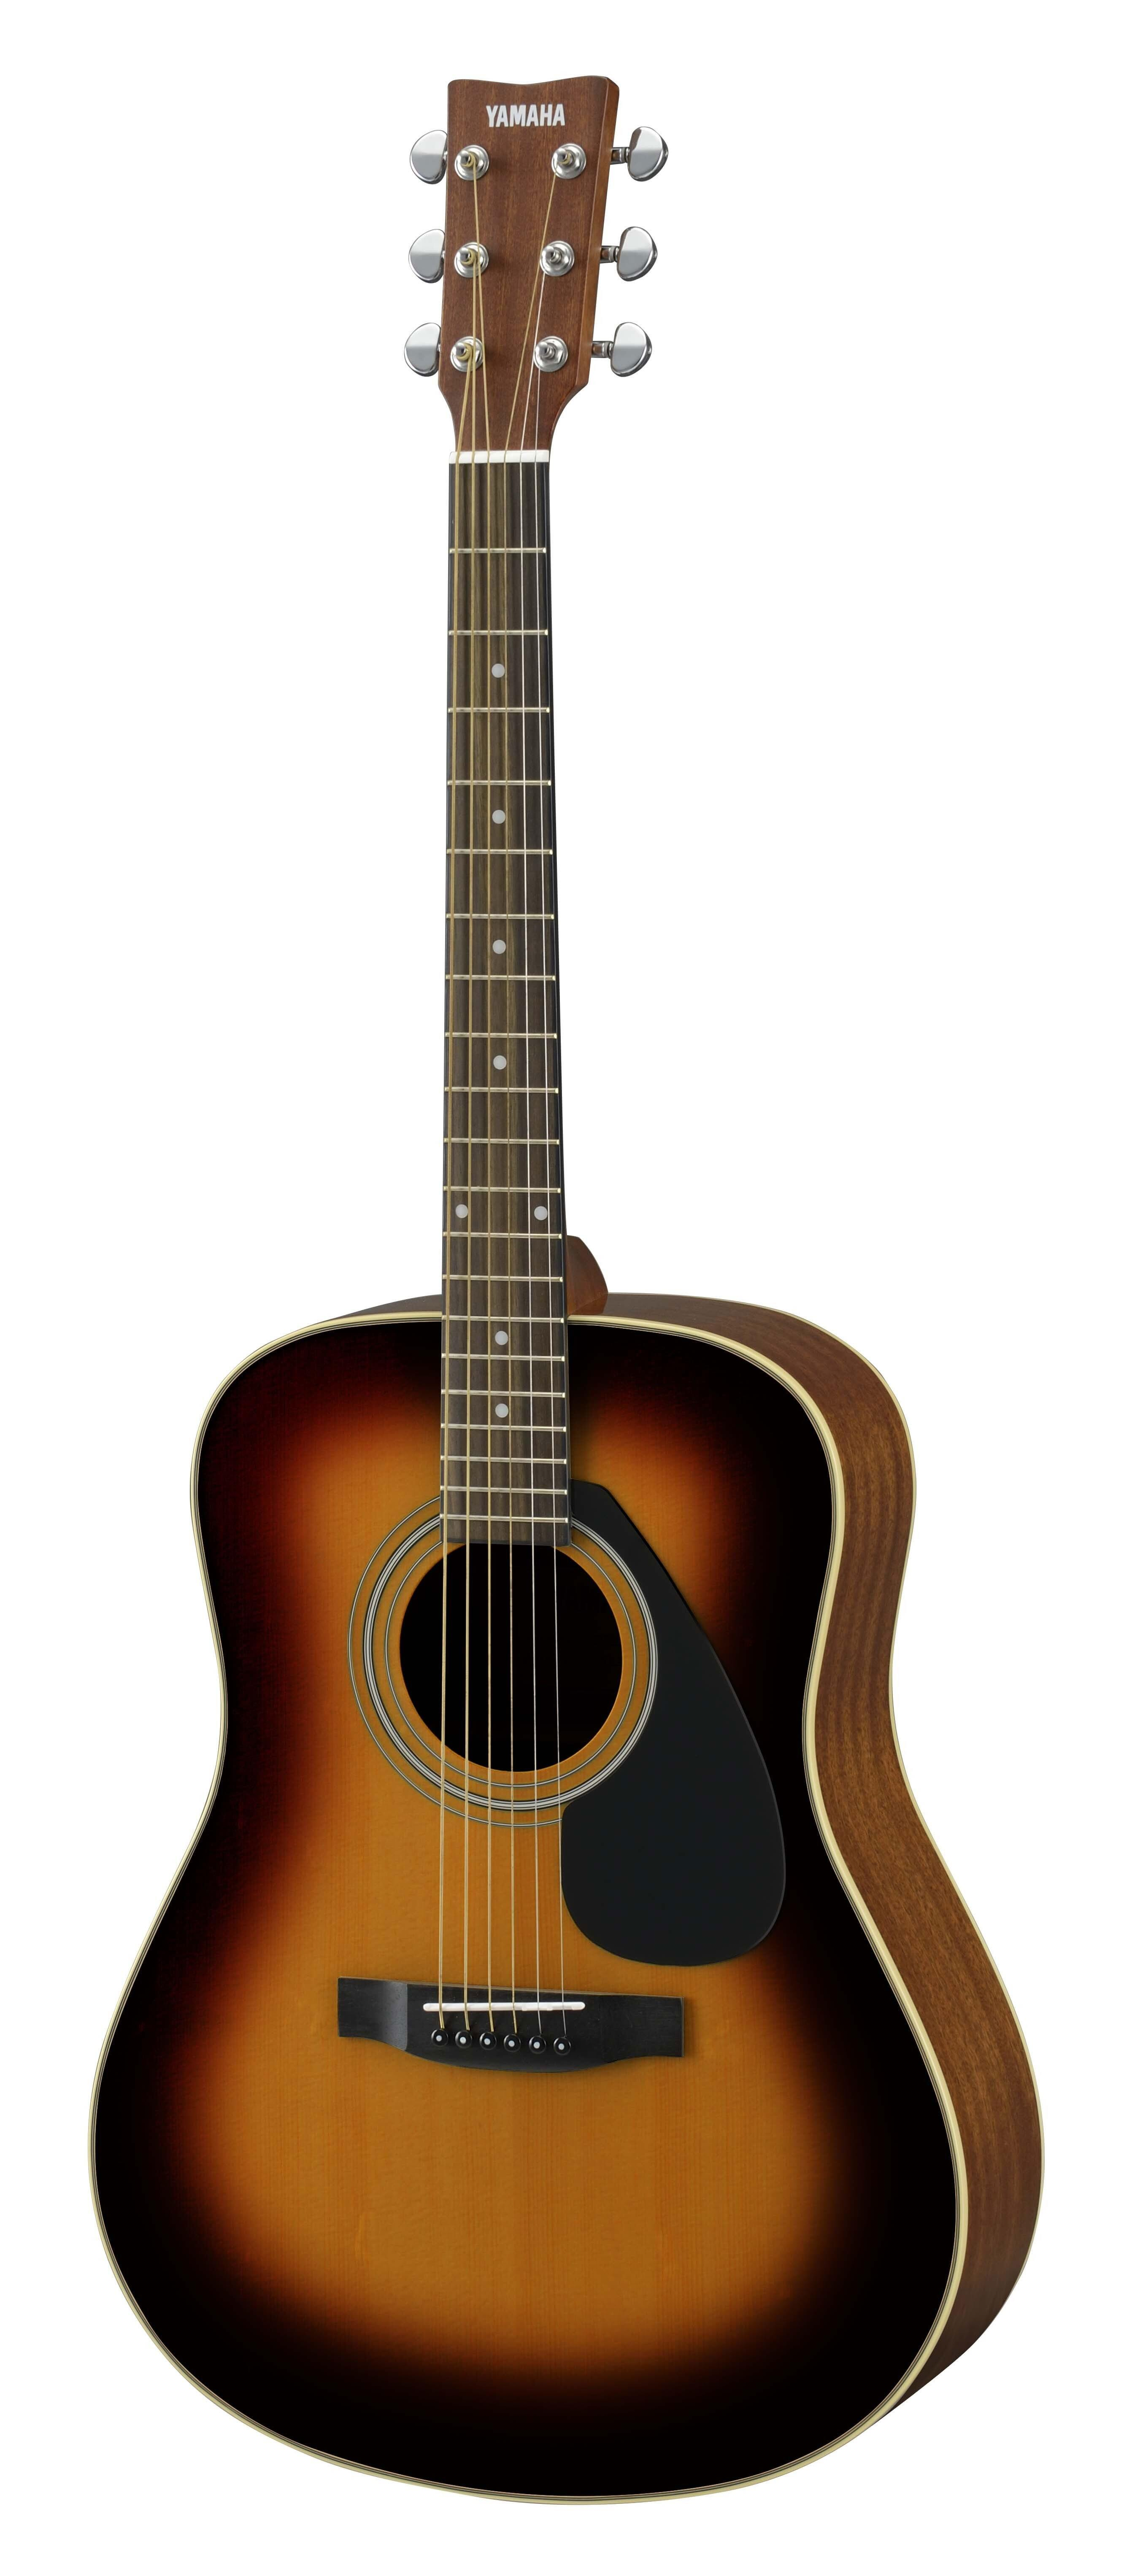 Guitarra Acústica Yamaha F370DW Tobacco Brown Sunburst